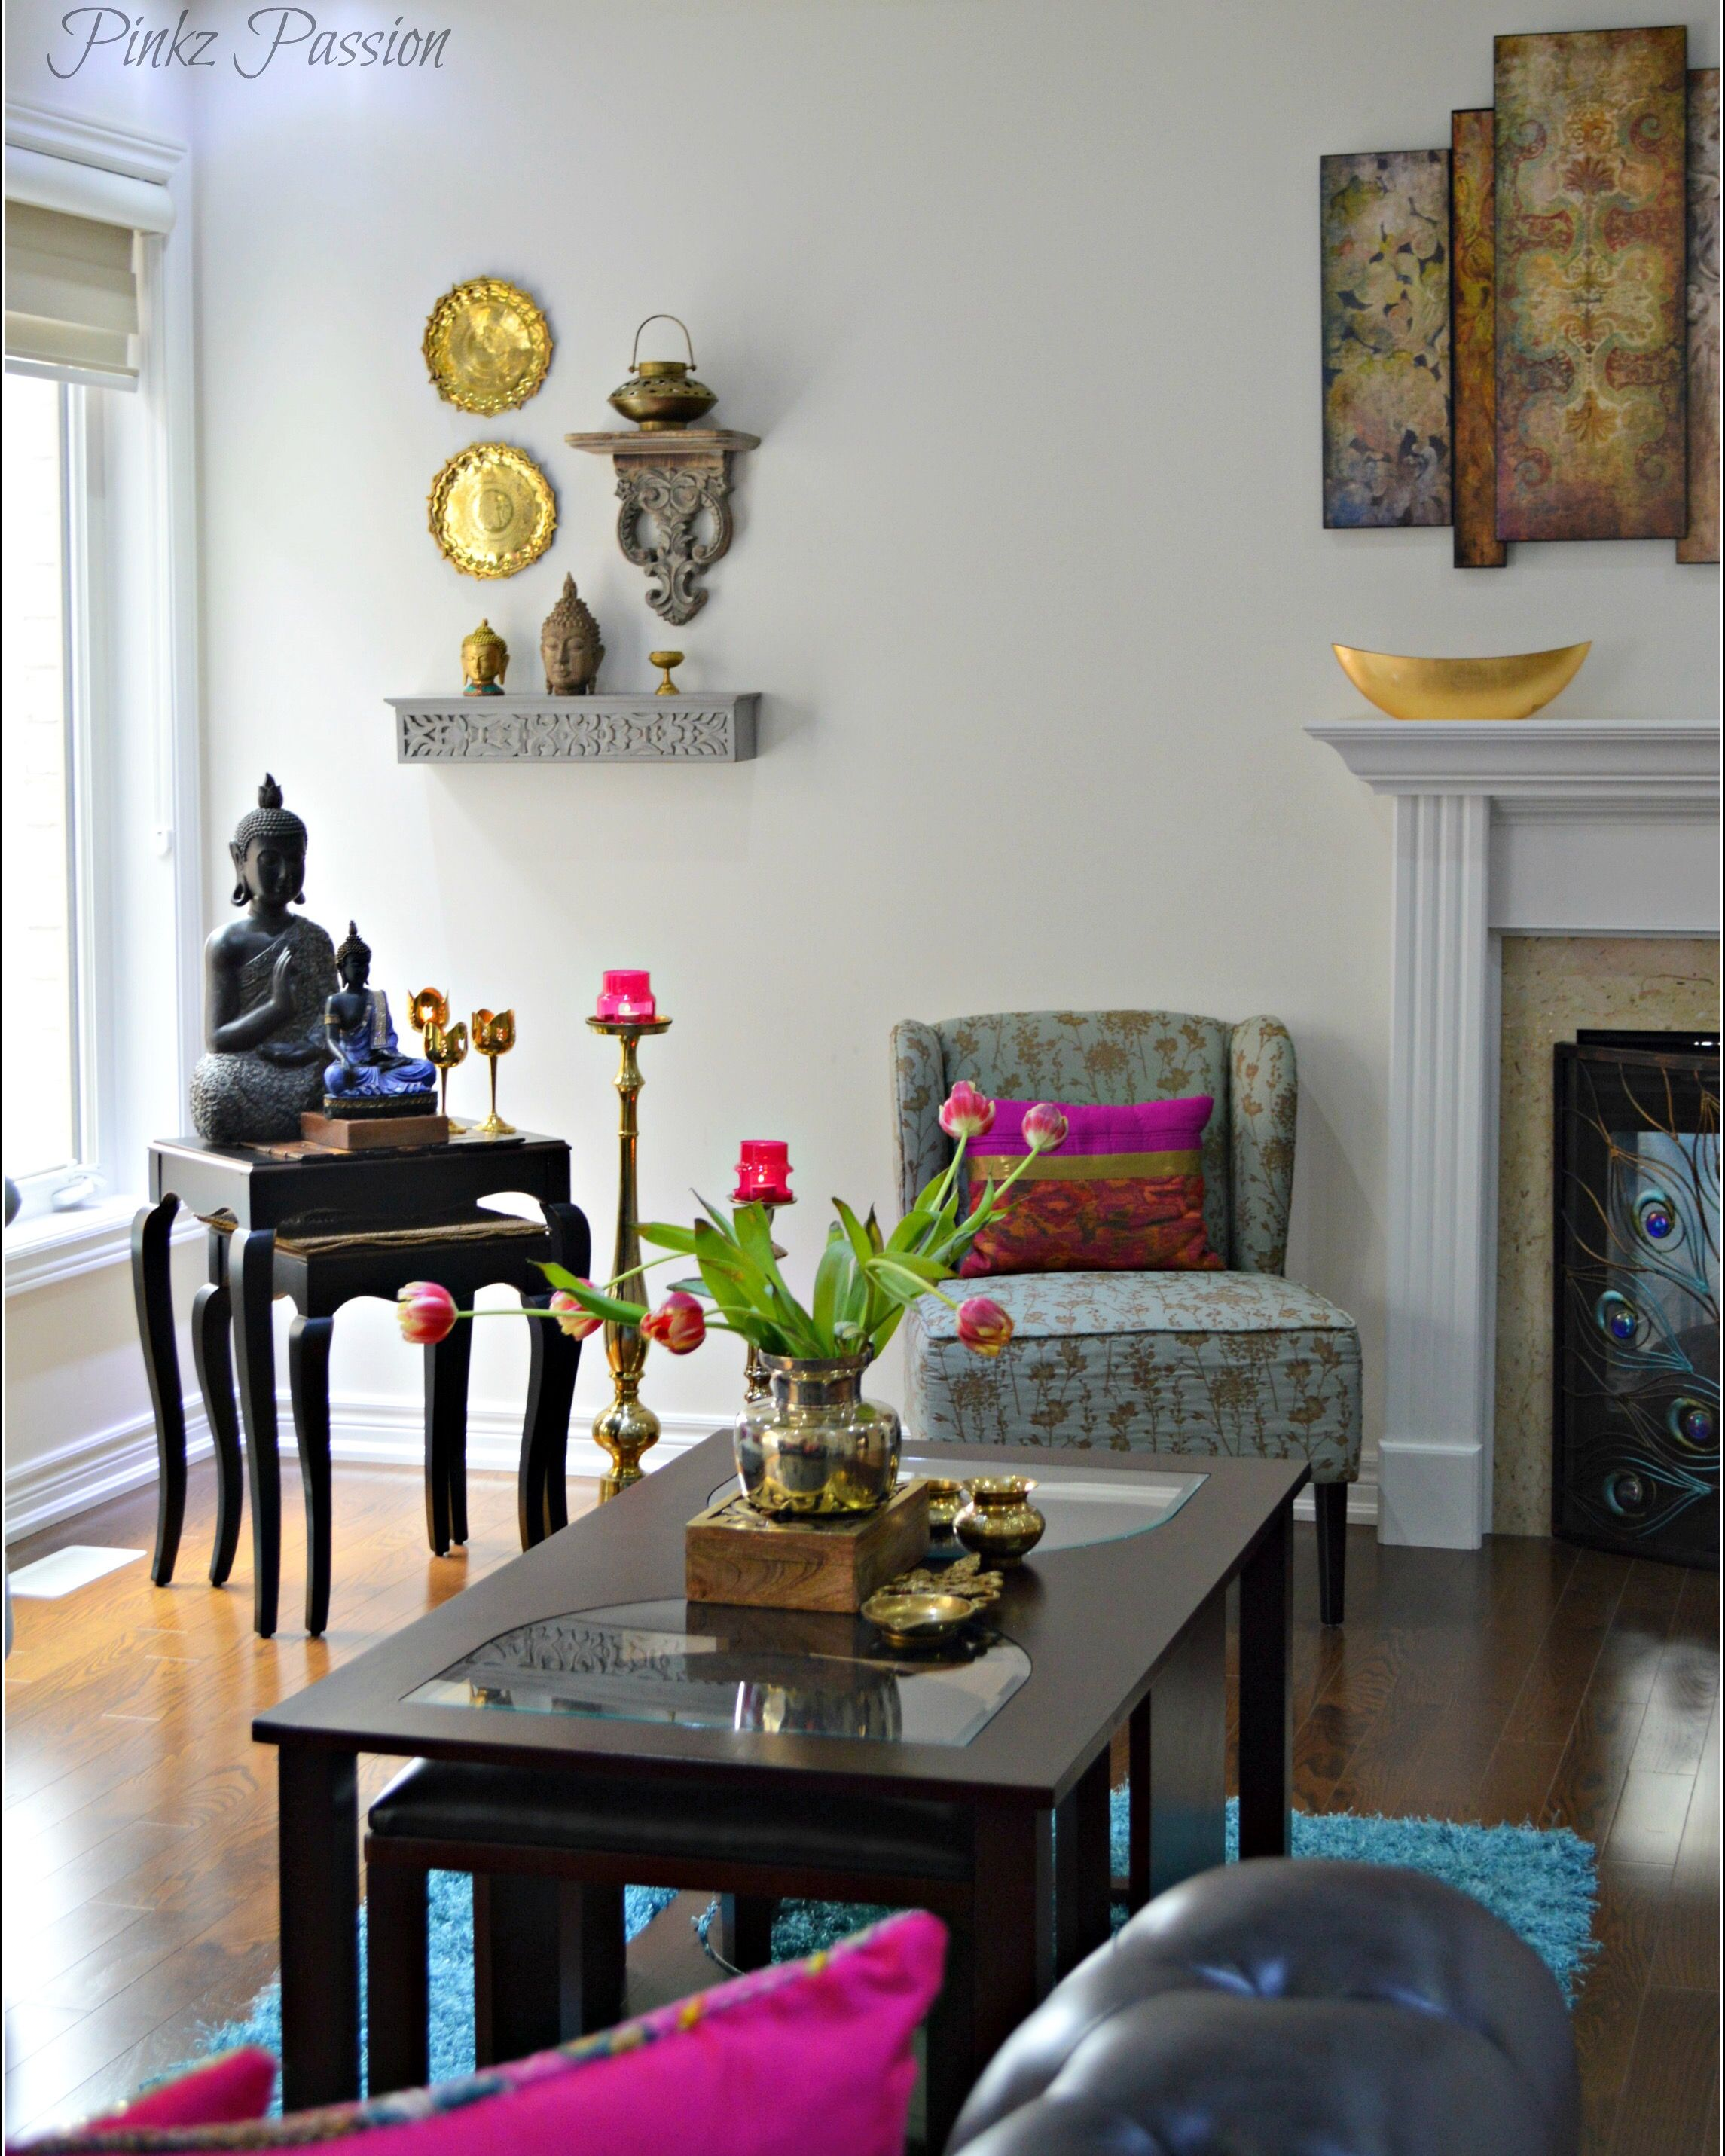 Home Beautiful Decor: Indian Inspired Decor, Indian Home Decor, Coffee Table